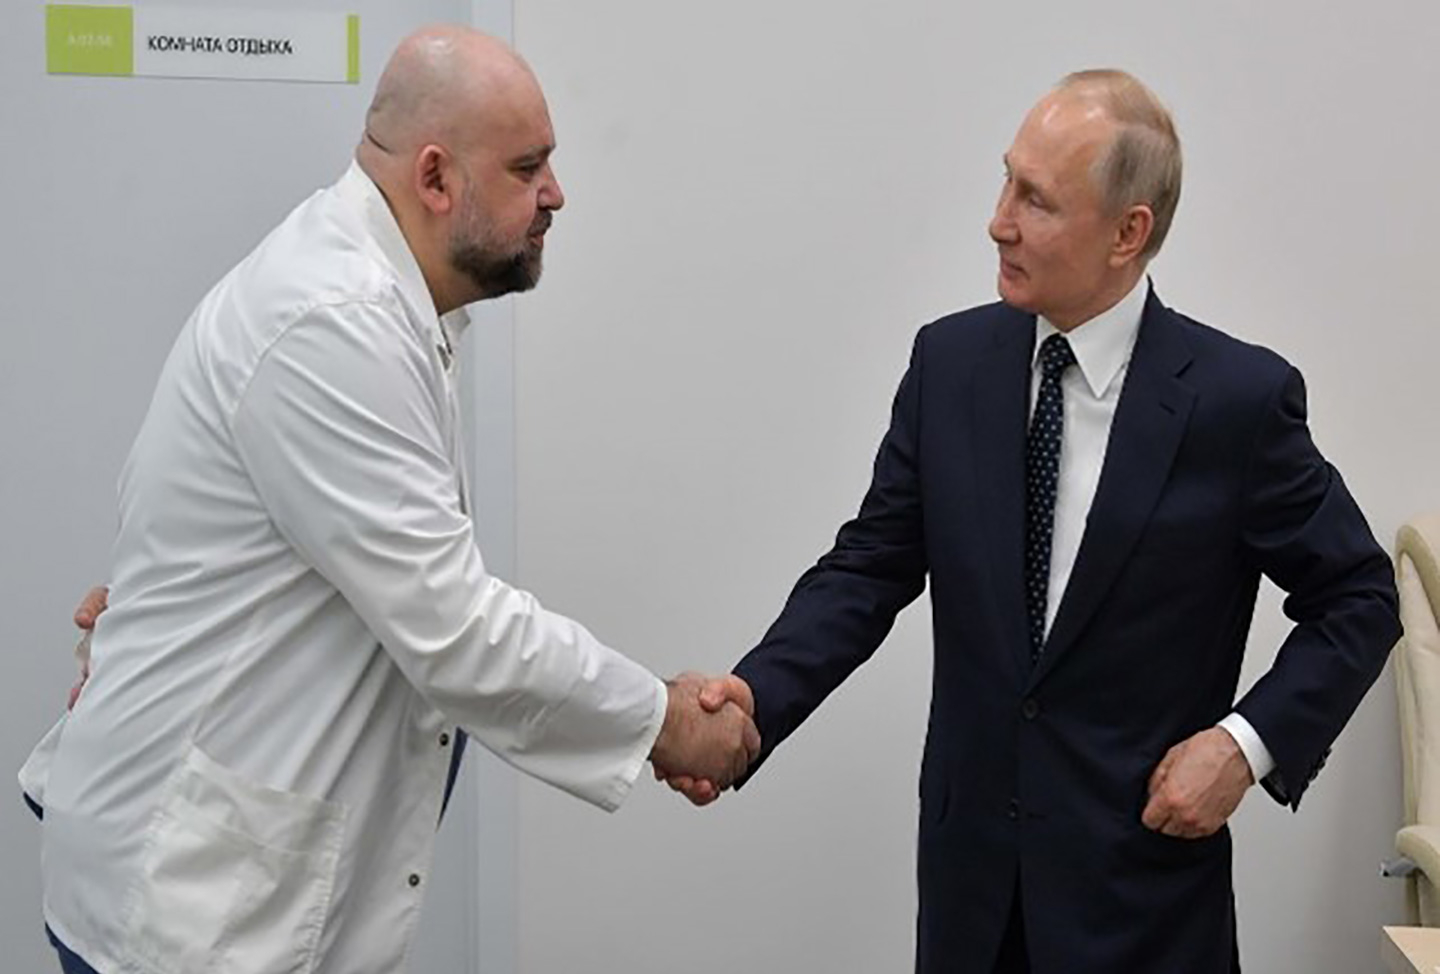 A photograph of Russian President Vladimir Putin shaking hands with the head of Moscow's new hospital treating coronavirus patients during his visit to Kommunarka hospital in Moscow, Russia.